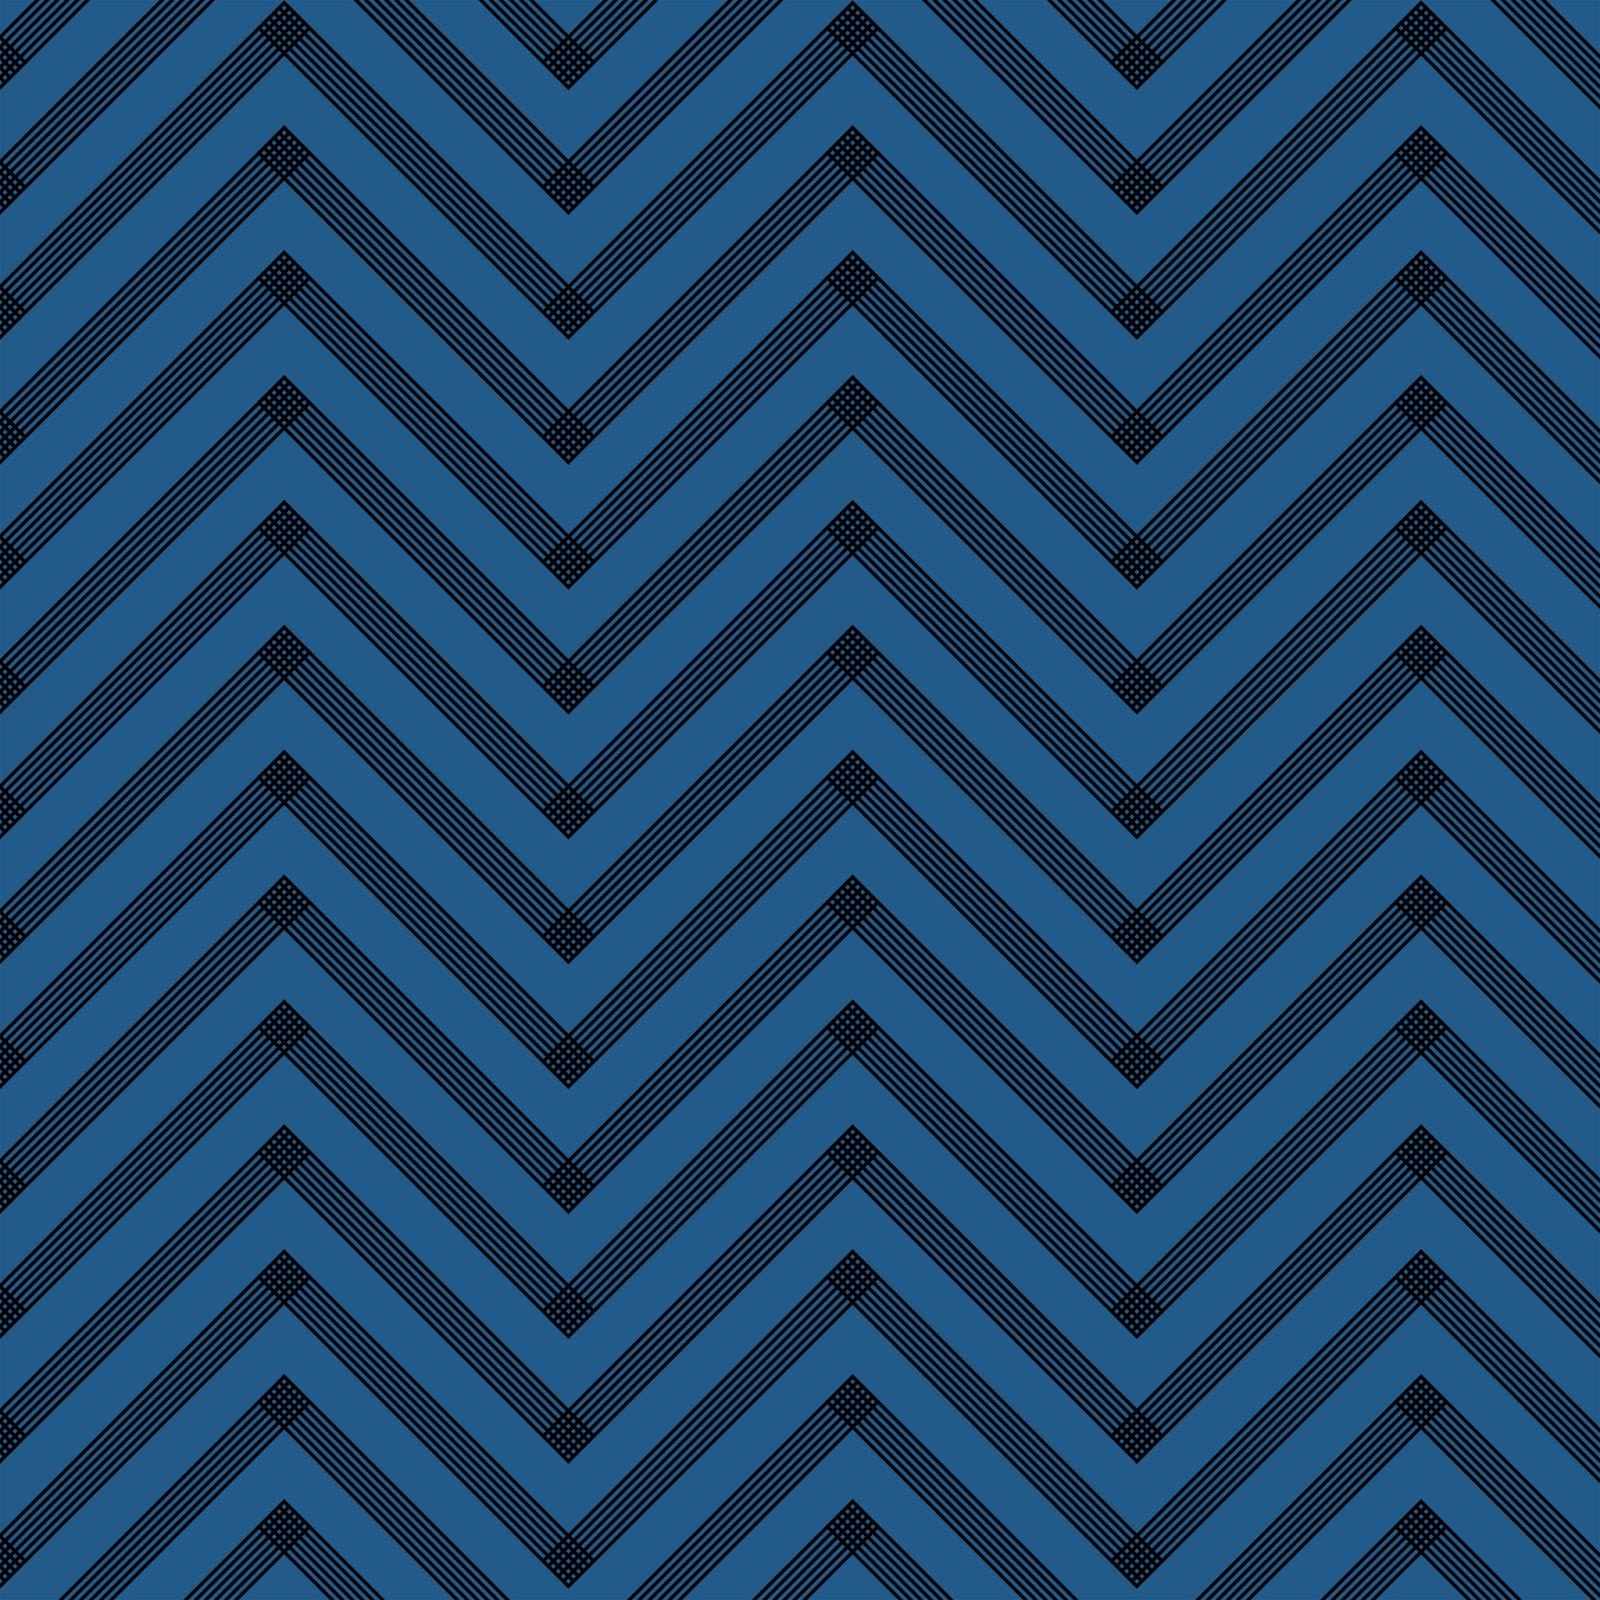 Navy Blue Anchor Background Images Pictures   Becuo 1600x1600